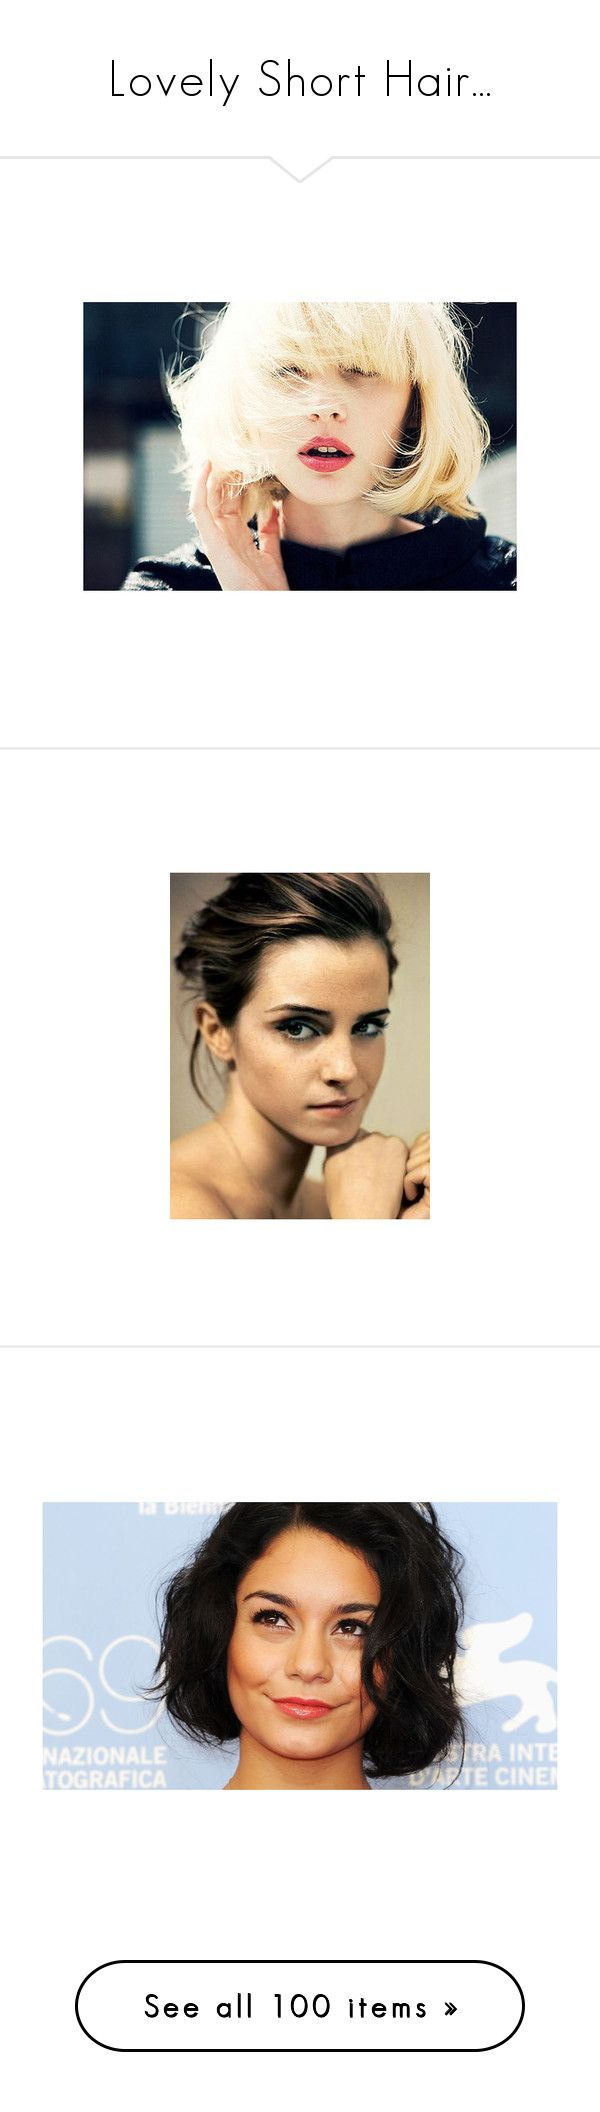 """Lovely Short Hair..."" by nerdfromnarnia ❤ liked on Polyvore featuring pictures, photos, models, people, backgrounds, emma watson, harry potter, fotos, vanessa hudgens and nails"